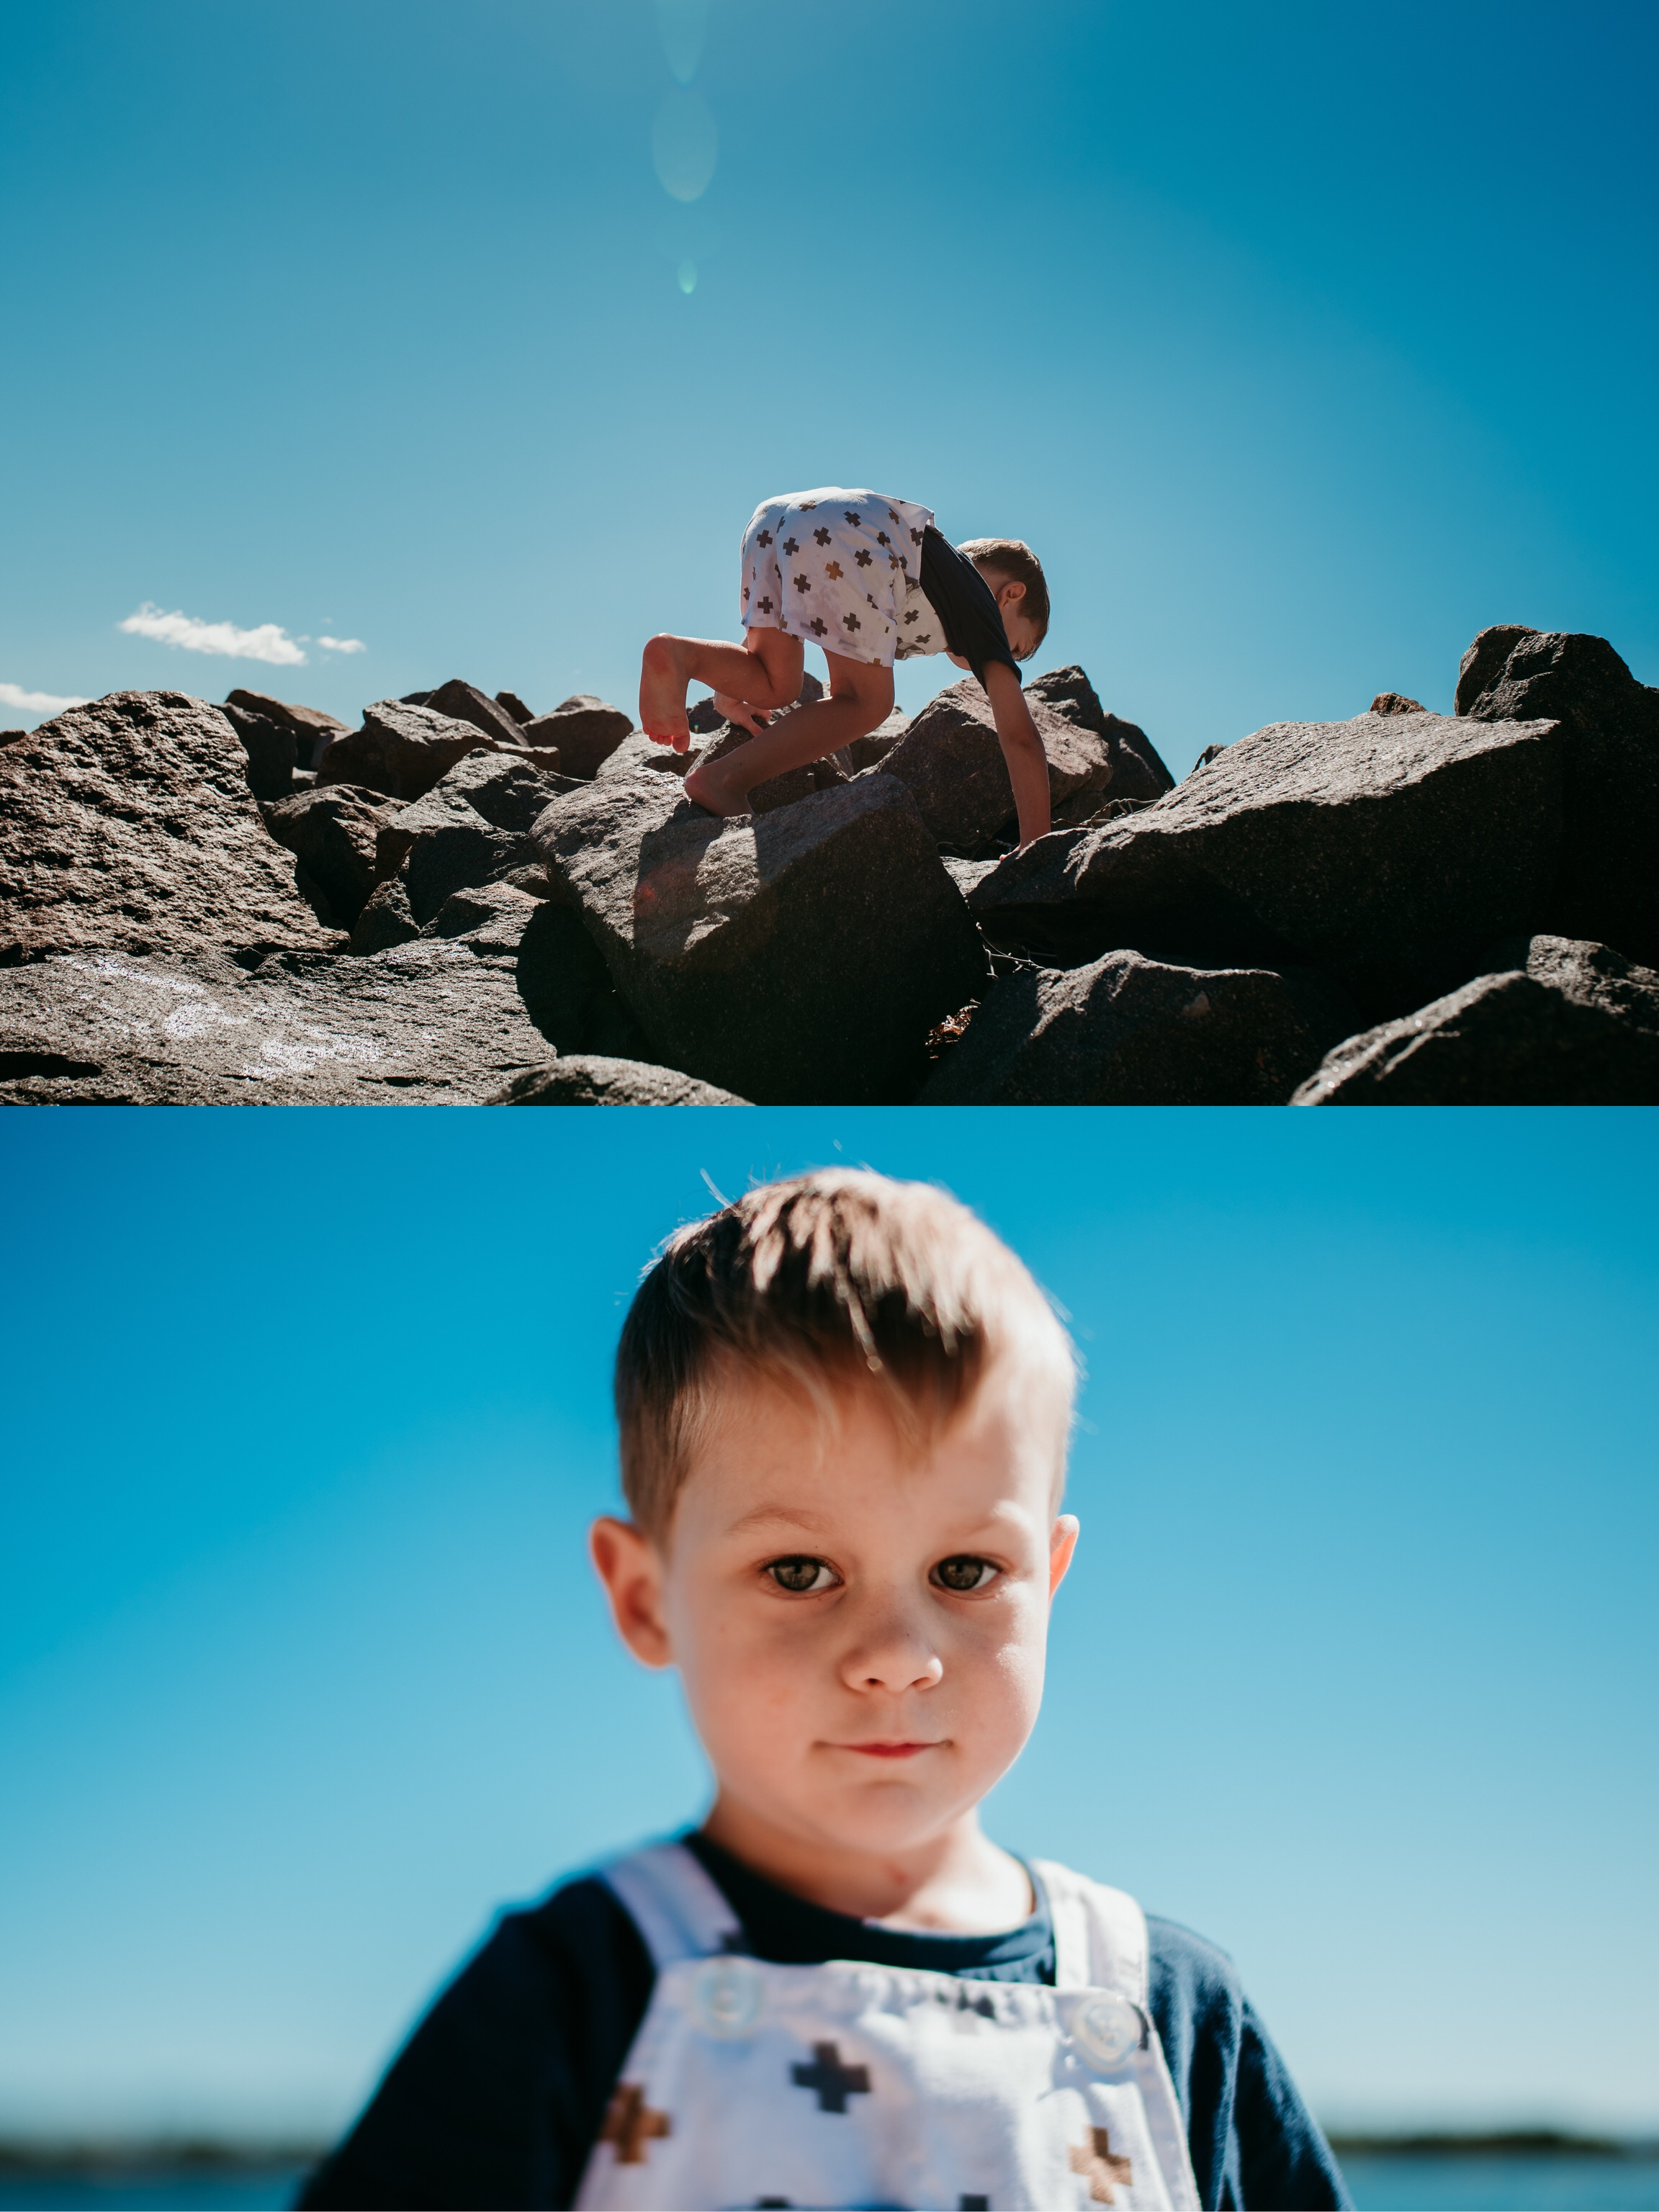 First time creating a diptych to showcase two perspectives of the same moment